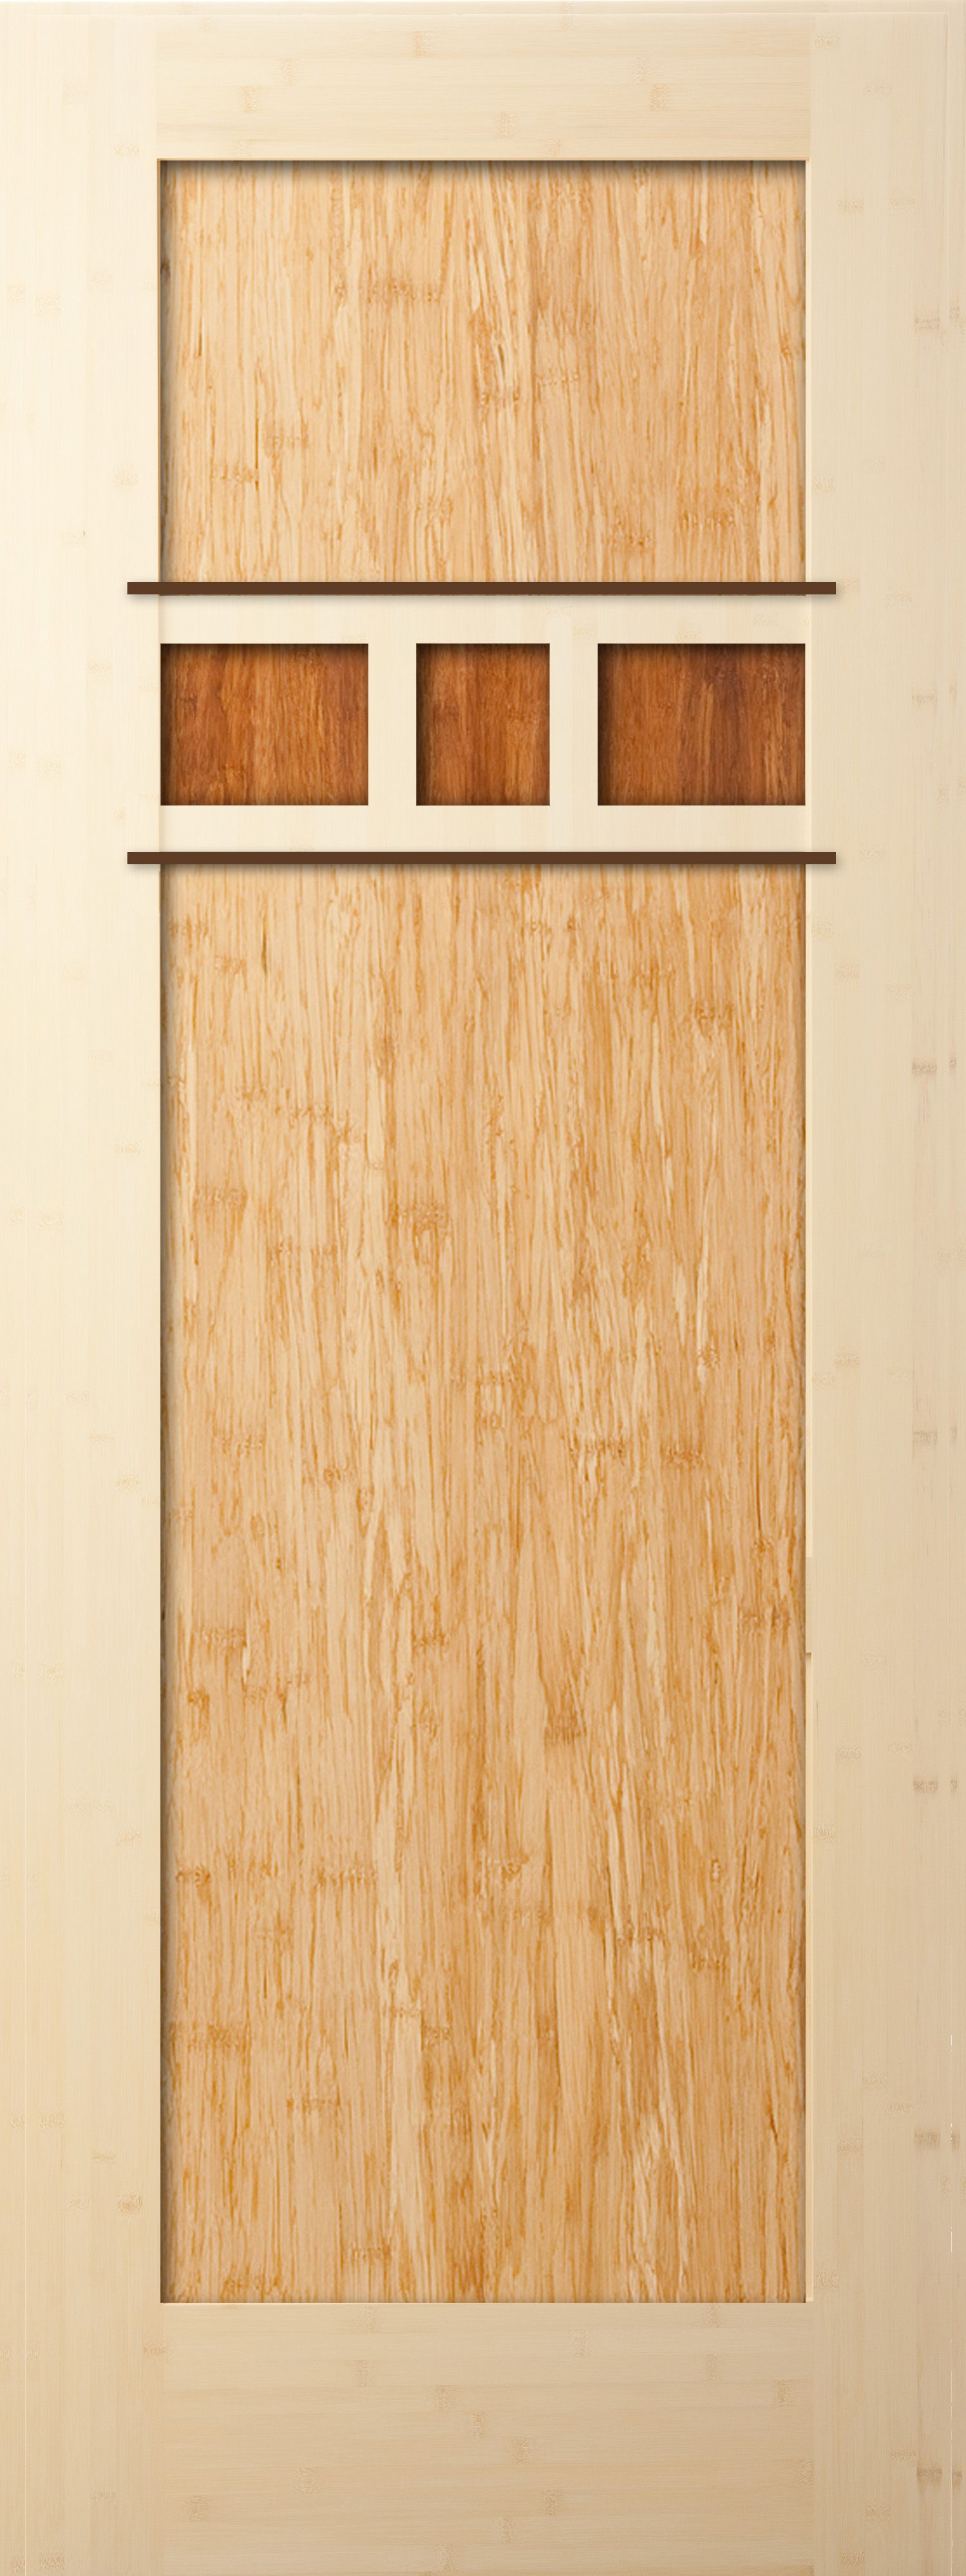 This Is The Beautiful Ulura Door With Plant Ons #design #architecture